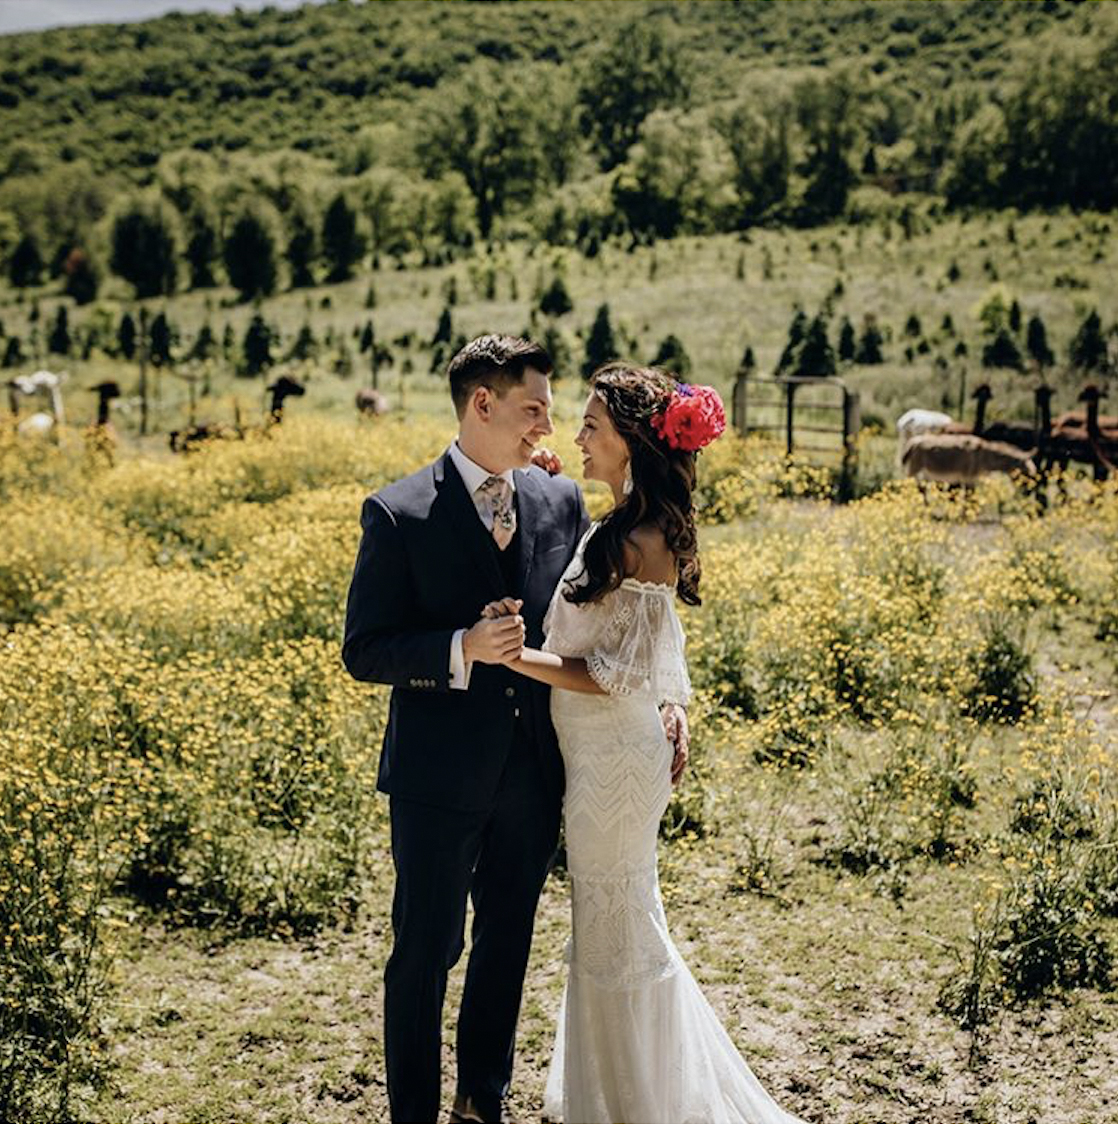 the orchards at rocking horse farm wedding venue barn heather skye photography photo.jpg